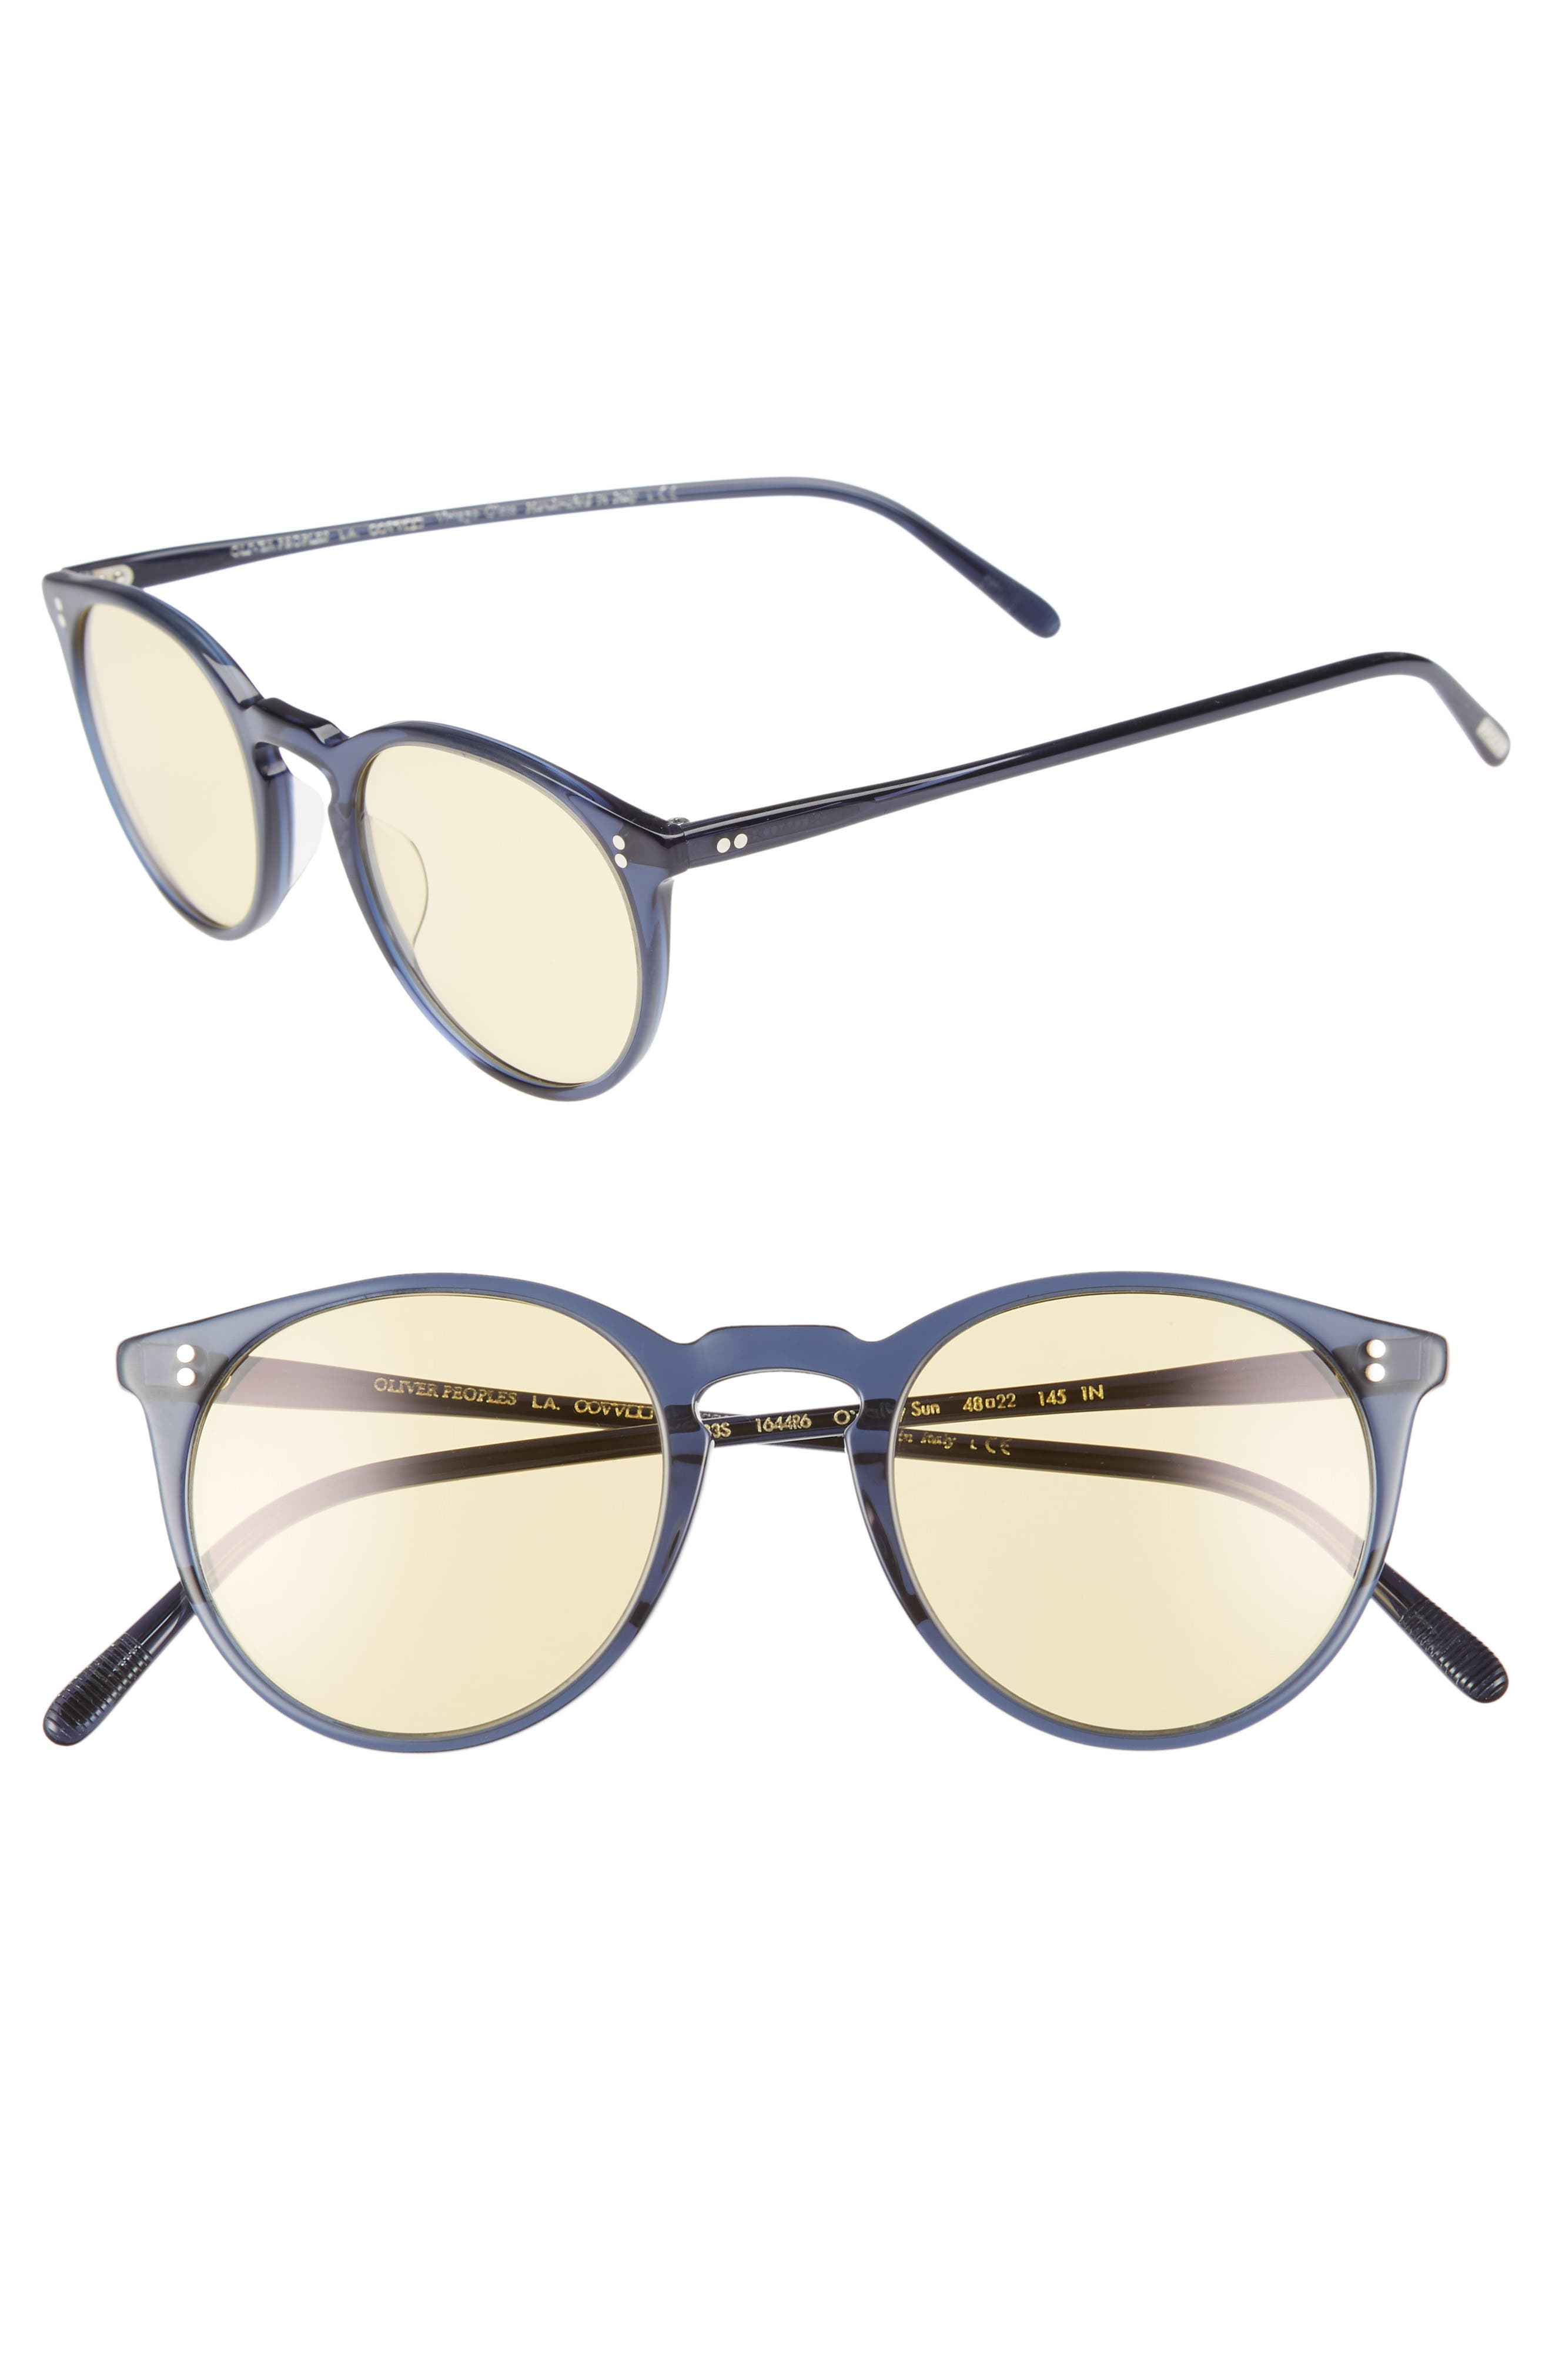 O'Malley 48mm Round Sunglasses,                             Main thumbnail 1, color,                             NAVY